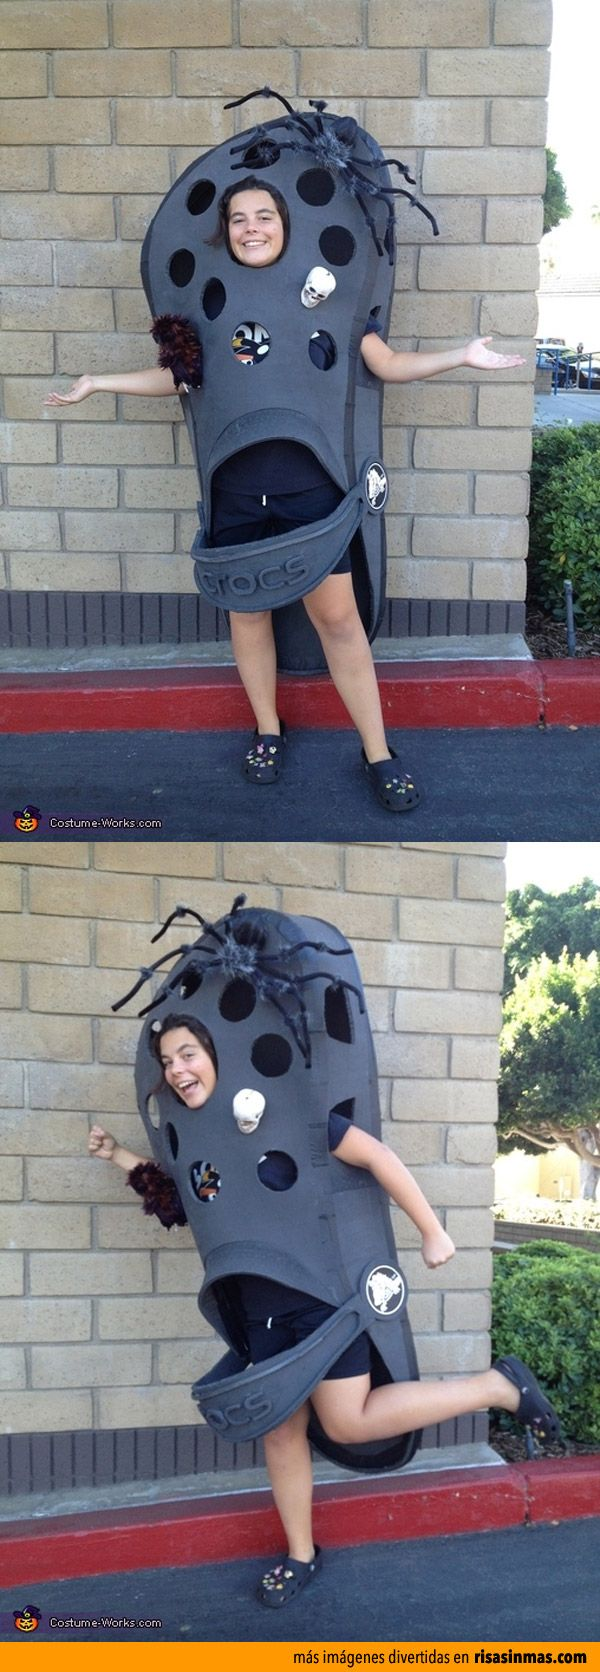 Disfraces originales: Crocs para Halloween.